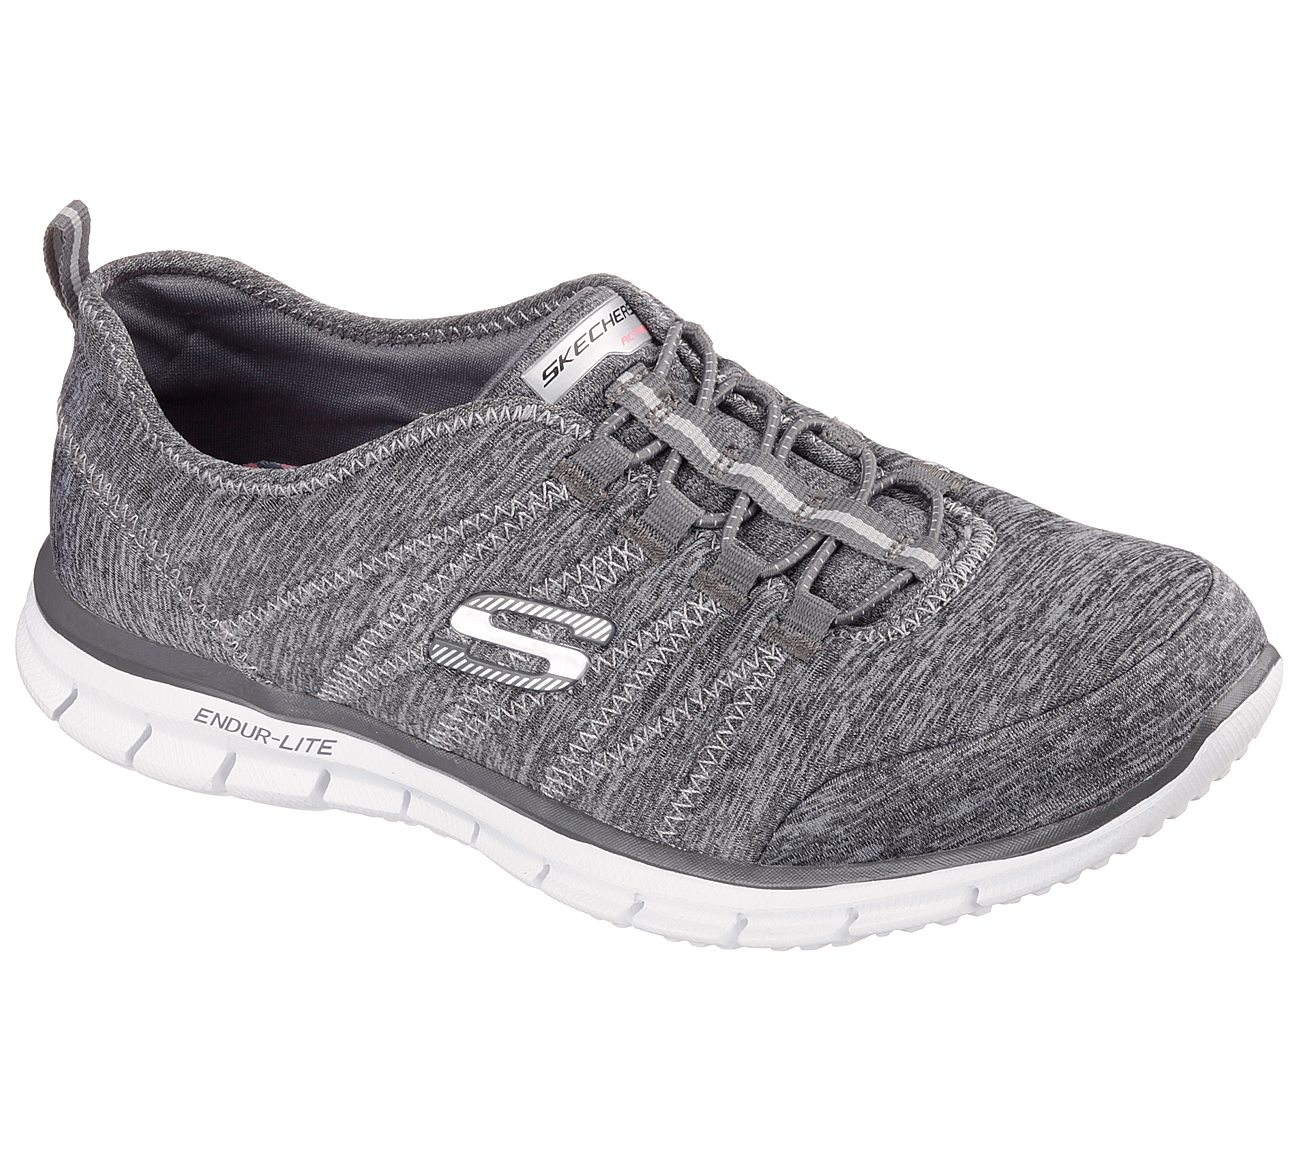 c11df50df12 Buy SKECHERS Glider - Electricity SKECHERS Sport Active Shoes only ...